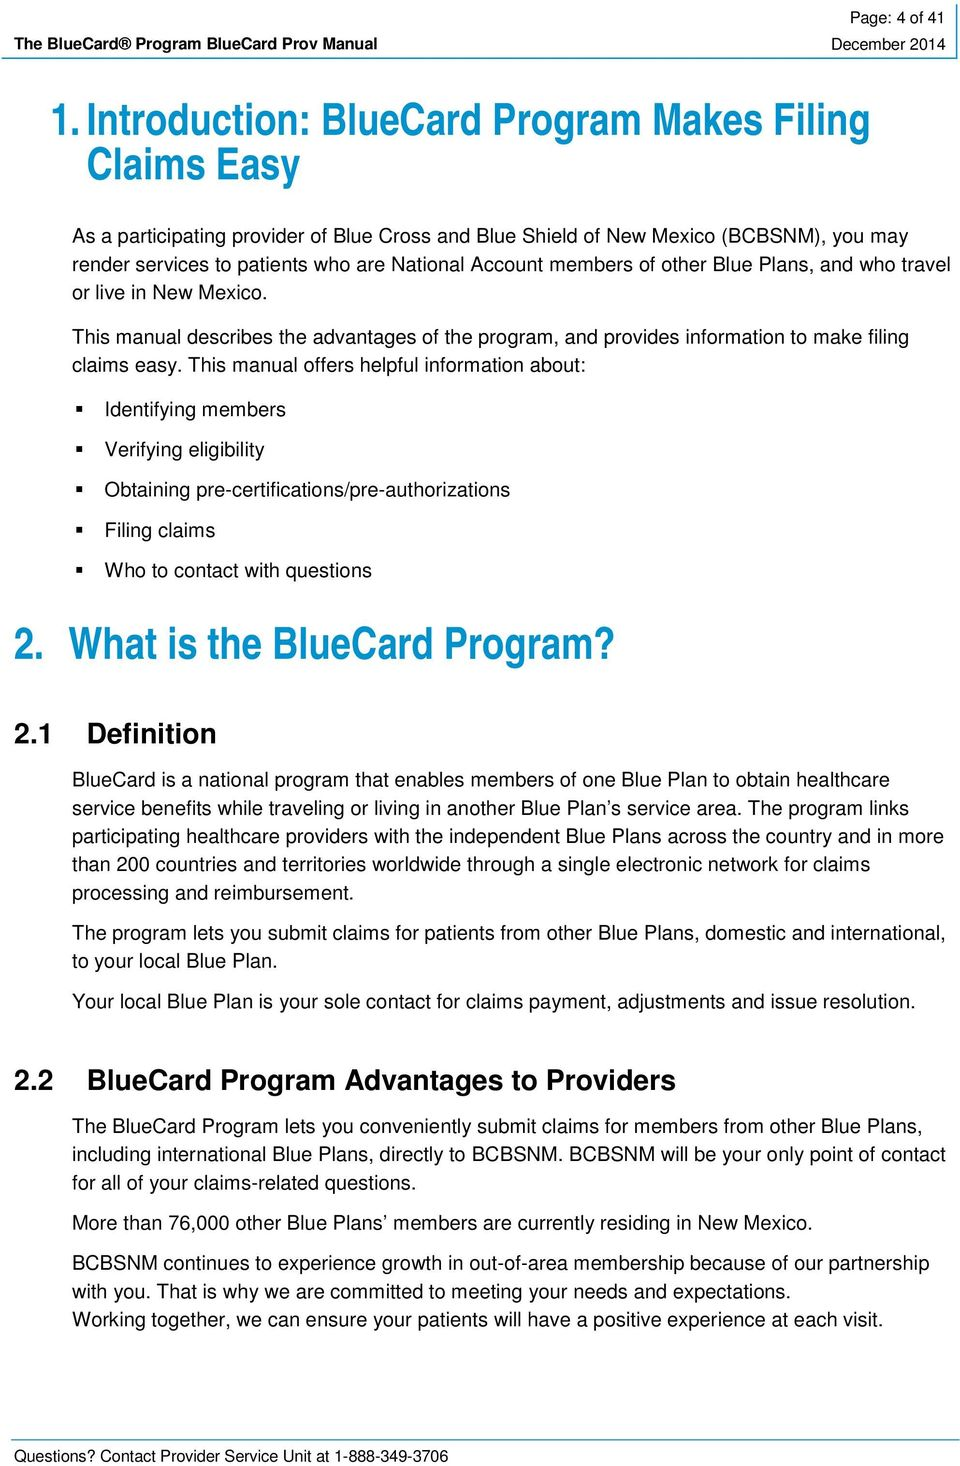 members of other Blue Plans, and who travel or live in New Mexico. This manual describes the advantages of the program, and provides information to make filing claims easy.